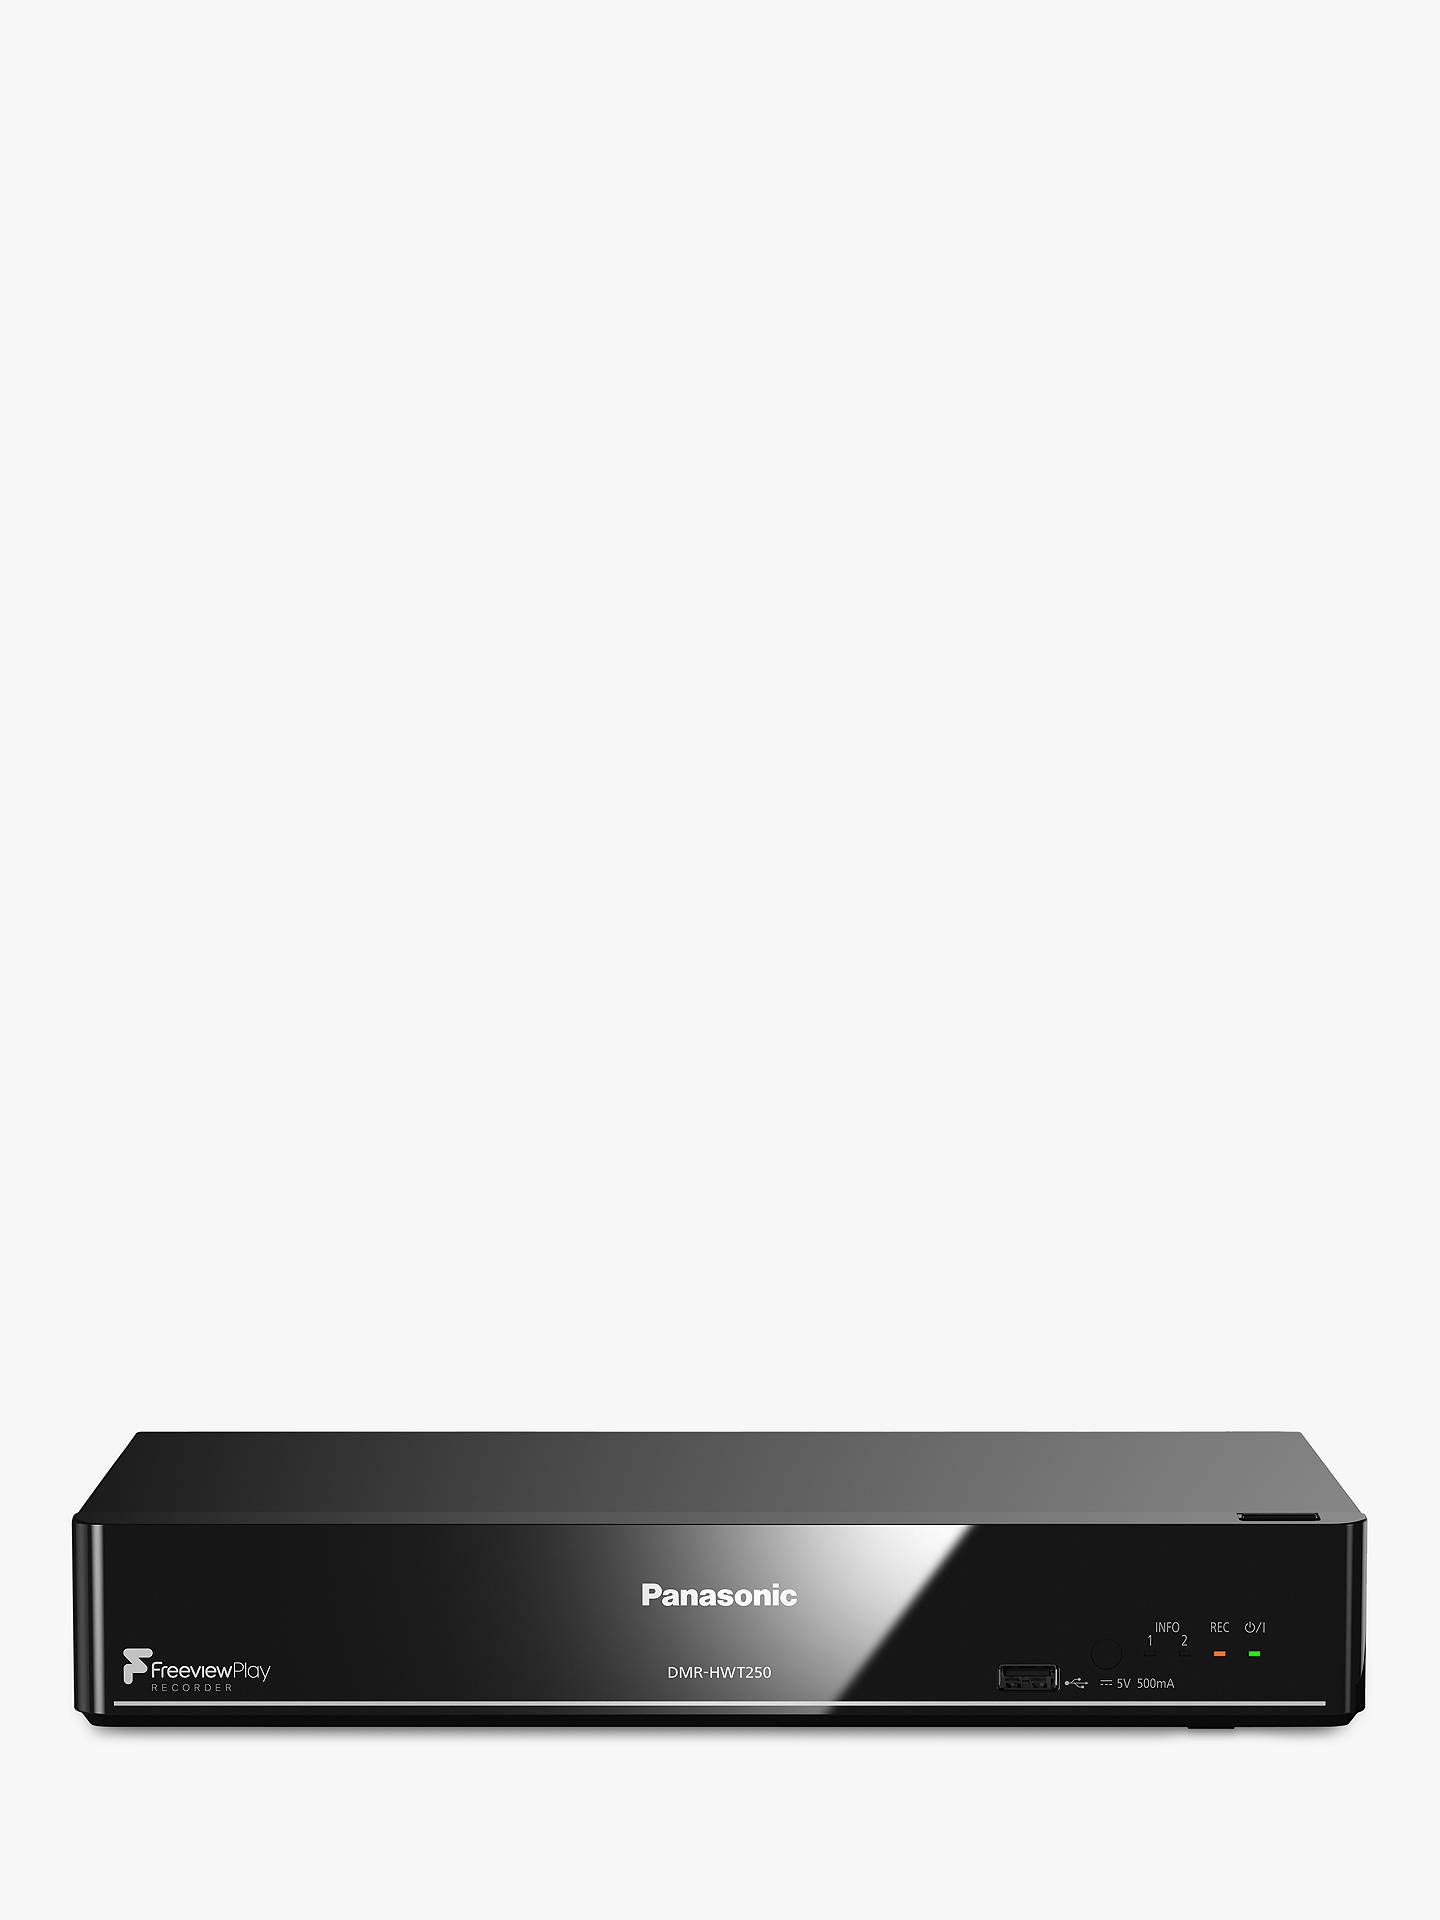 panasonic dmr hwt250eb smart freeview hd freeview play pvr with 1tb hdd recorder at john lewis. Black Bedroom Furniture Sets. Home Design Ideas